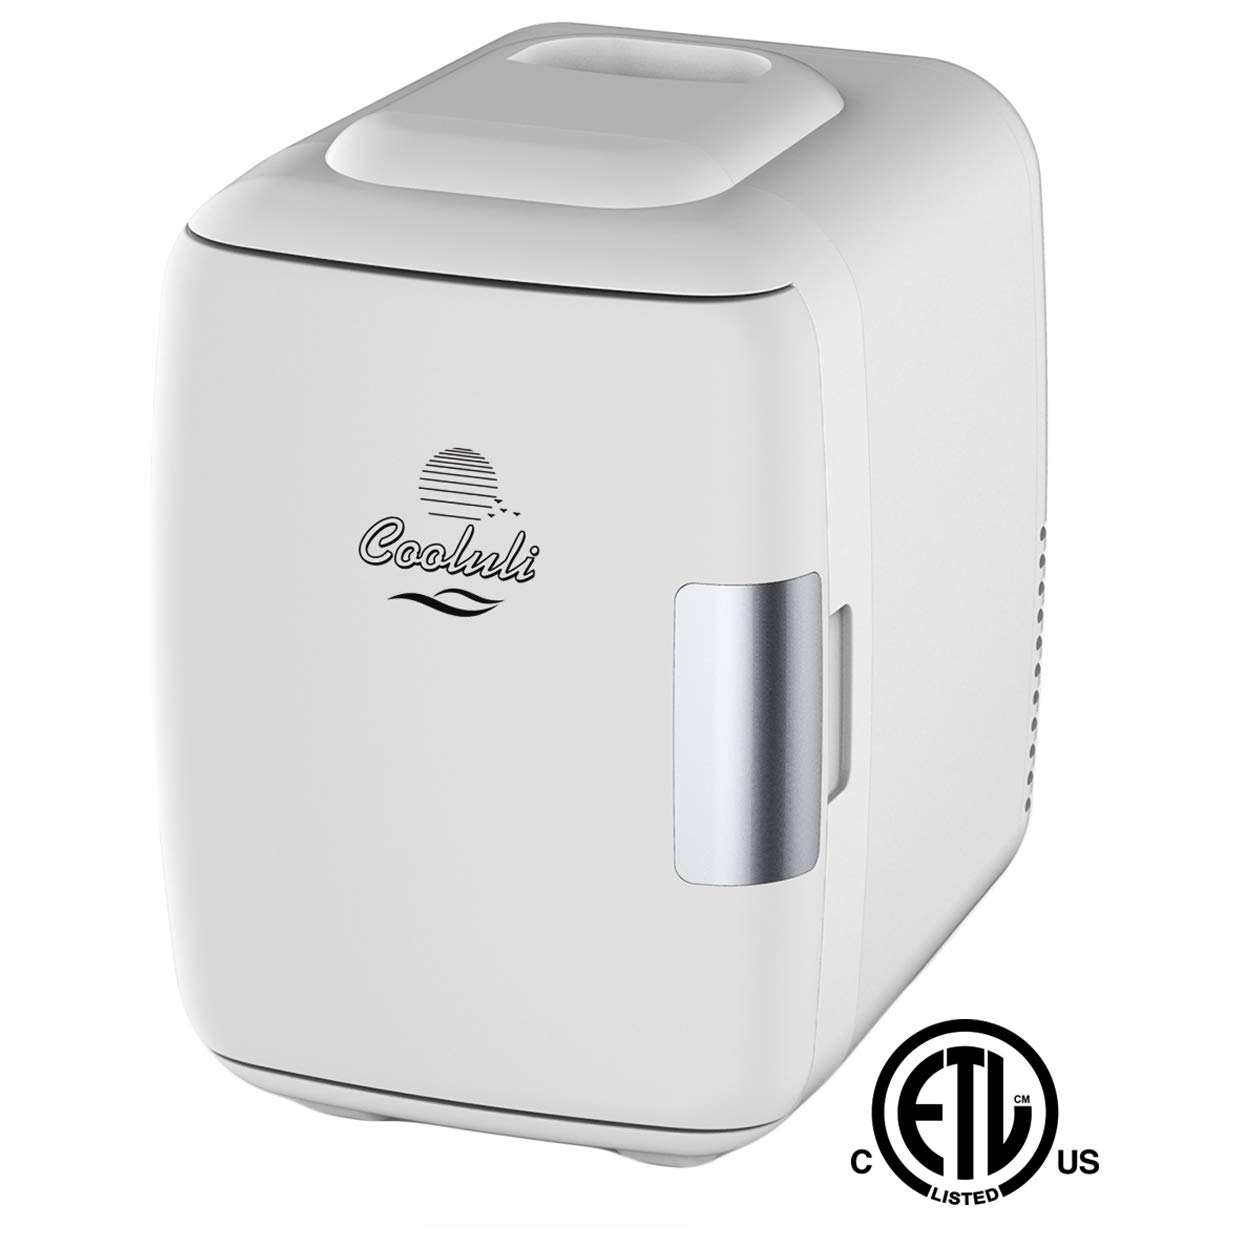 ویکالا · خرید  اصل اورجینال · خرید از آمازون · Cooluli Mini Fridge Electric Cooler and Warmer (4 Liter / 6 Can): AC/DC Portable Thermoelectric System w/ Exclusive On the Go USB Power Bank Option (White) wekala · ویکالا